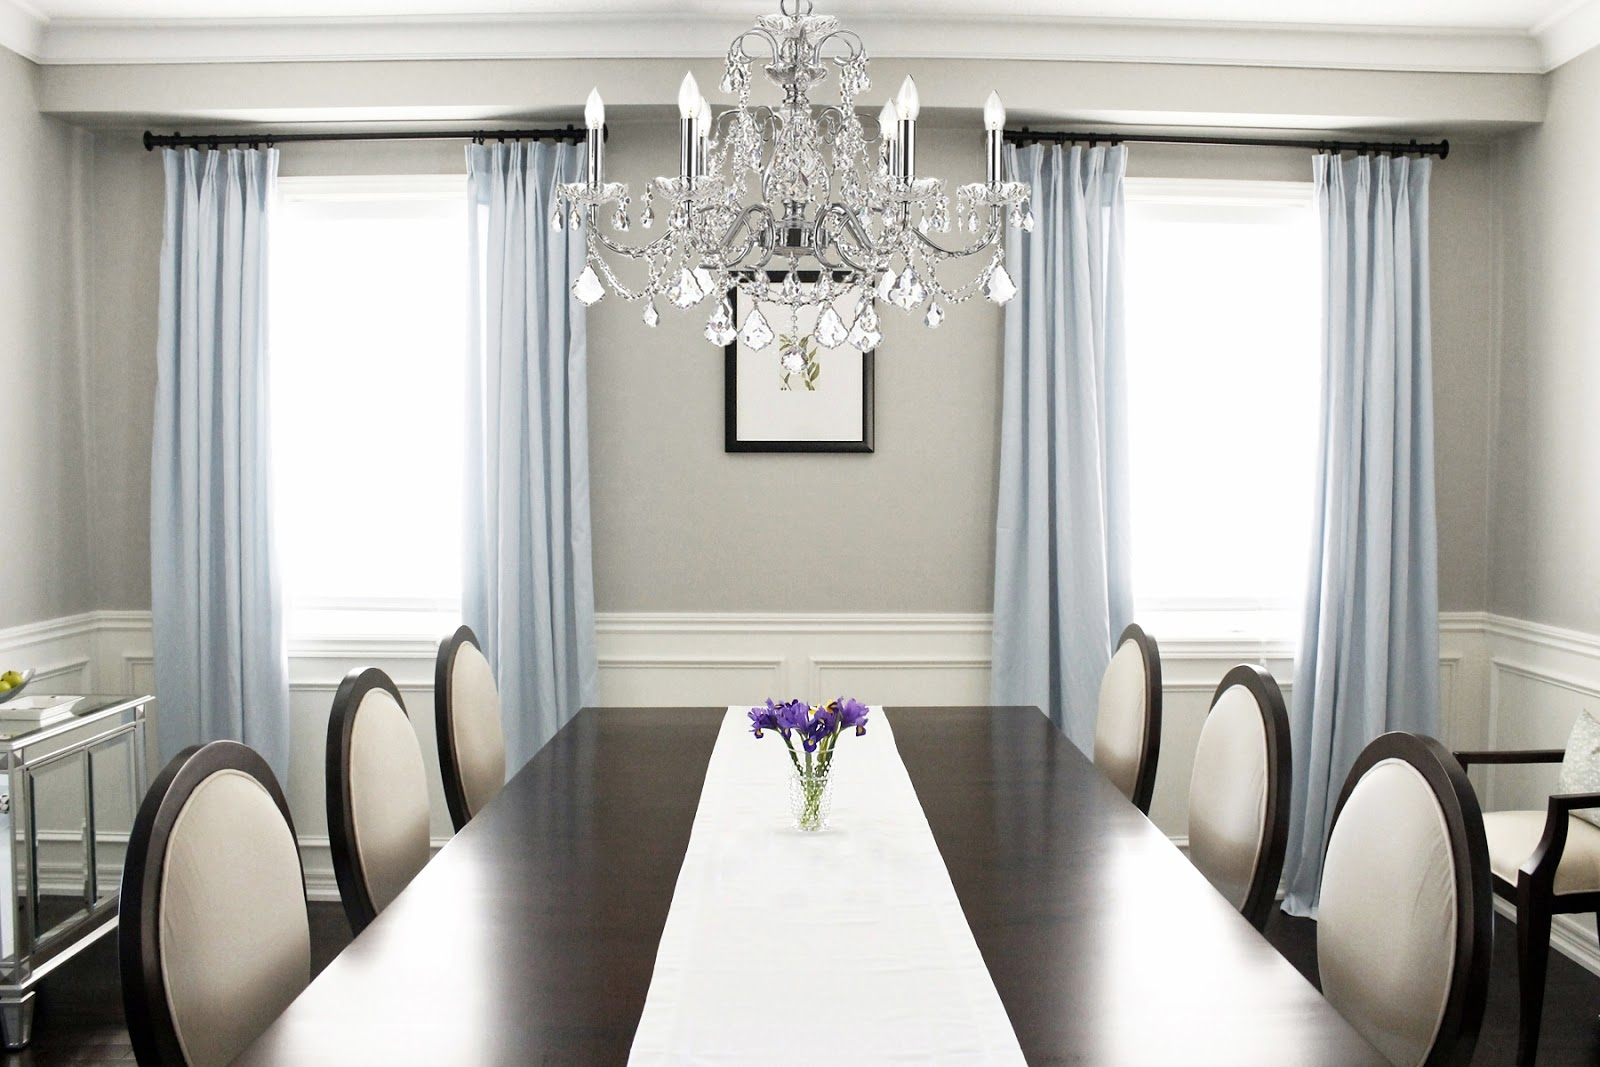 Dining Room Crystal Chandeliers. Modern Crystal Chandeliers For ...:Crystal Dining Room Chandeliers Euskalnet - Dining room crystal chandeliers,Lighting